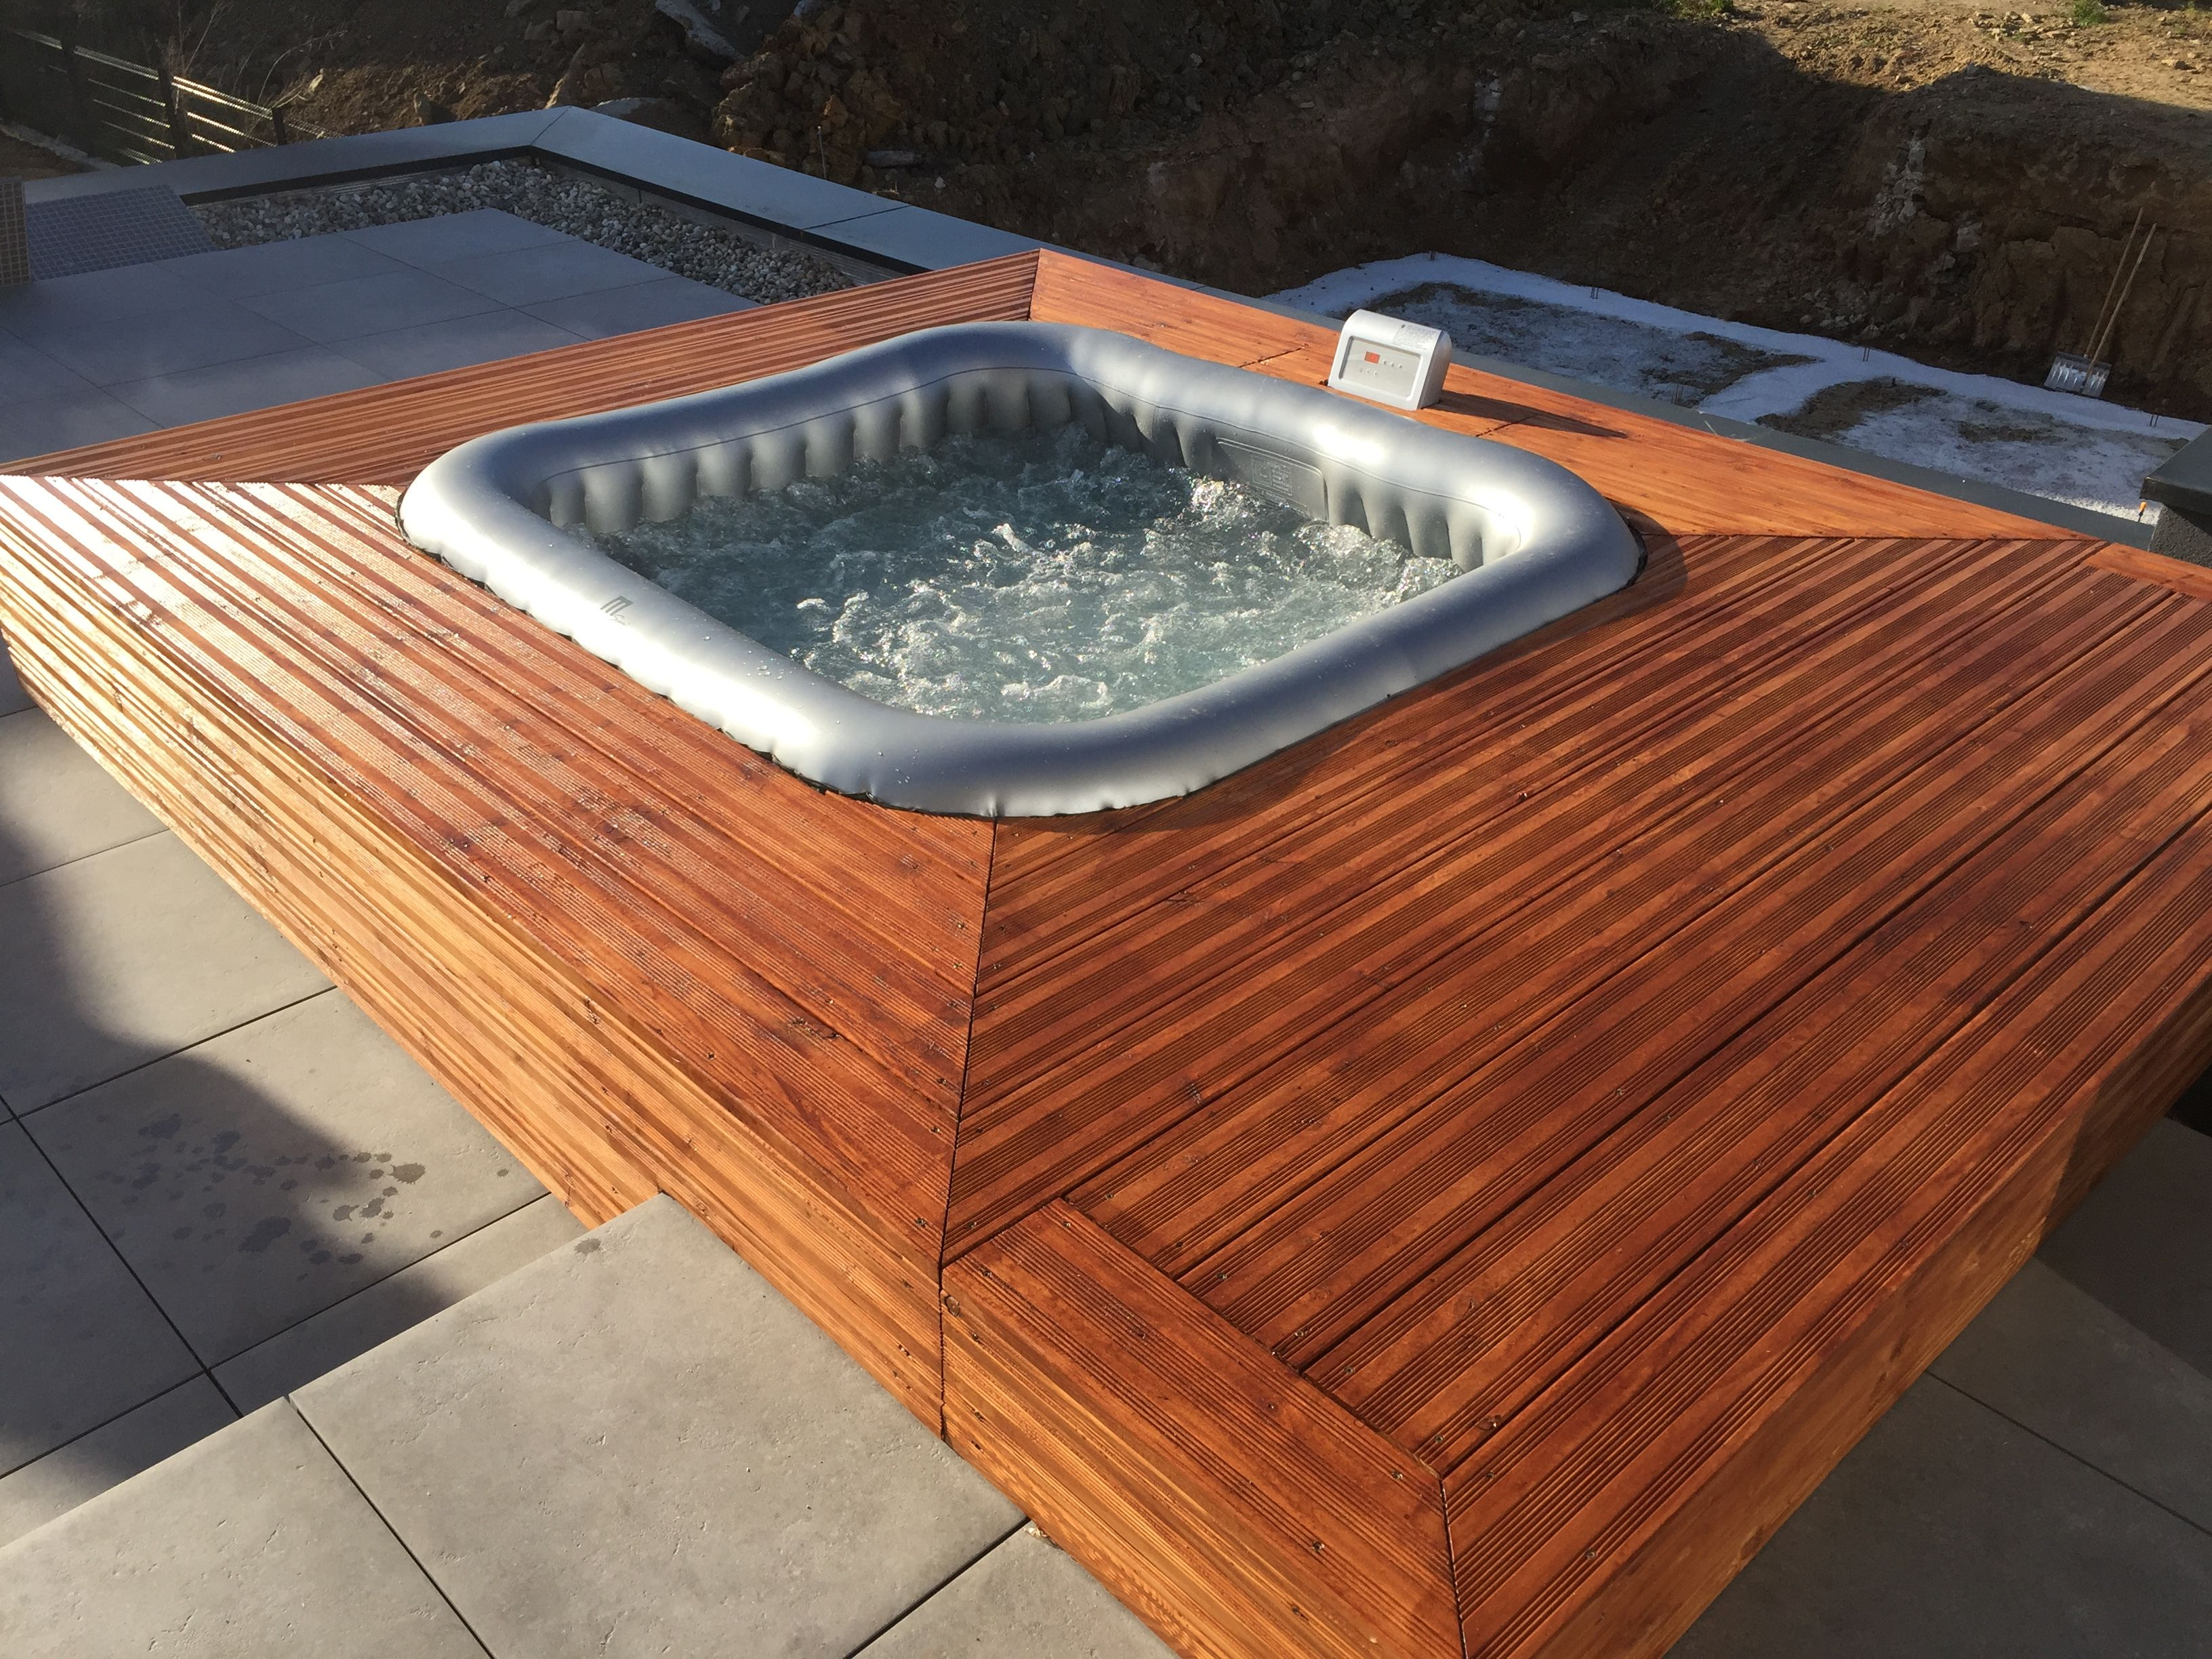 Habillage Pour Spa Gonflable Spa Gonflable Habillage Bois